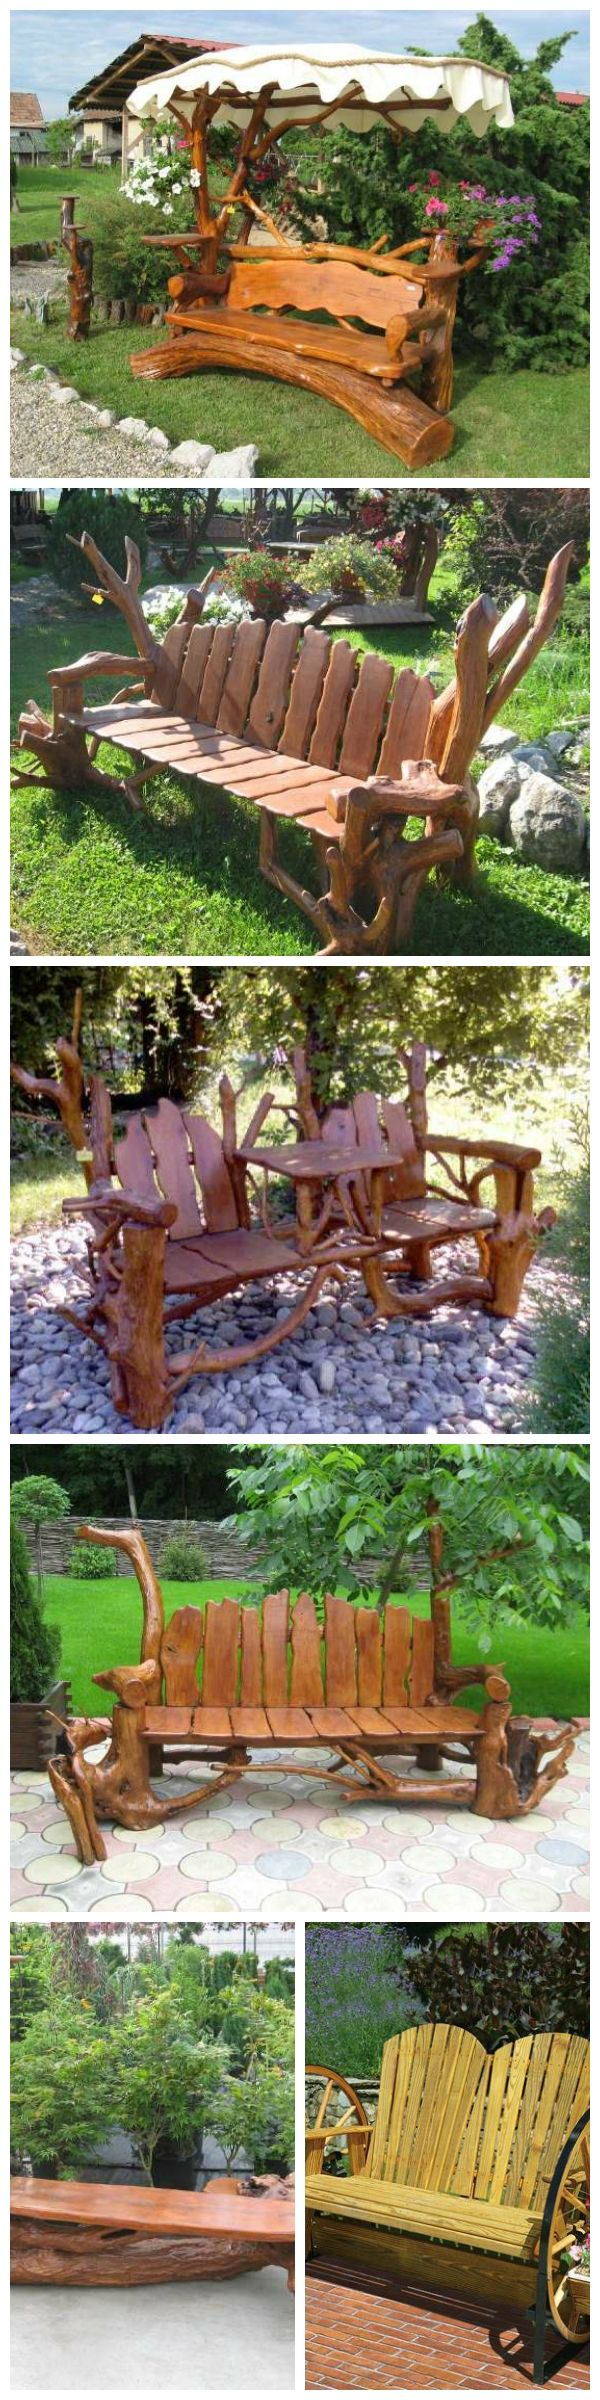 Amazing Rustic Benches